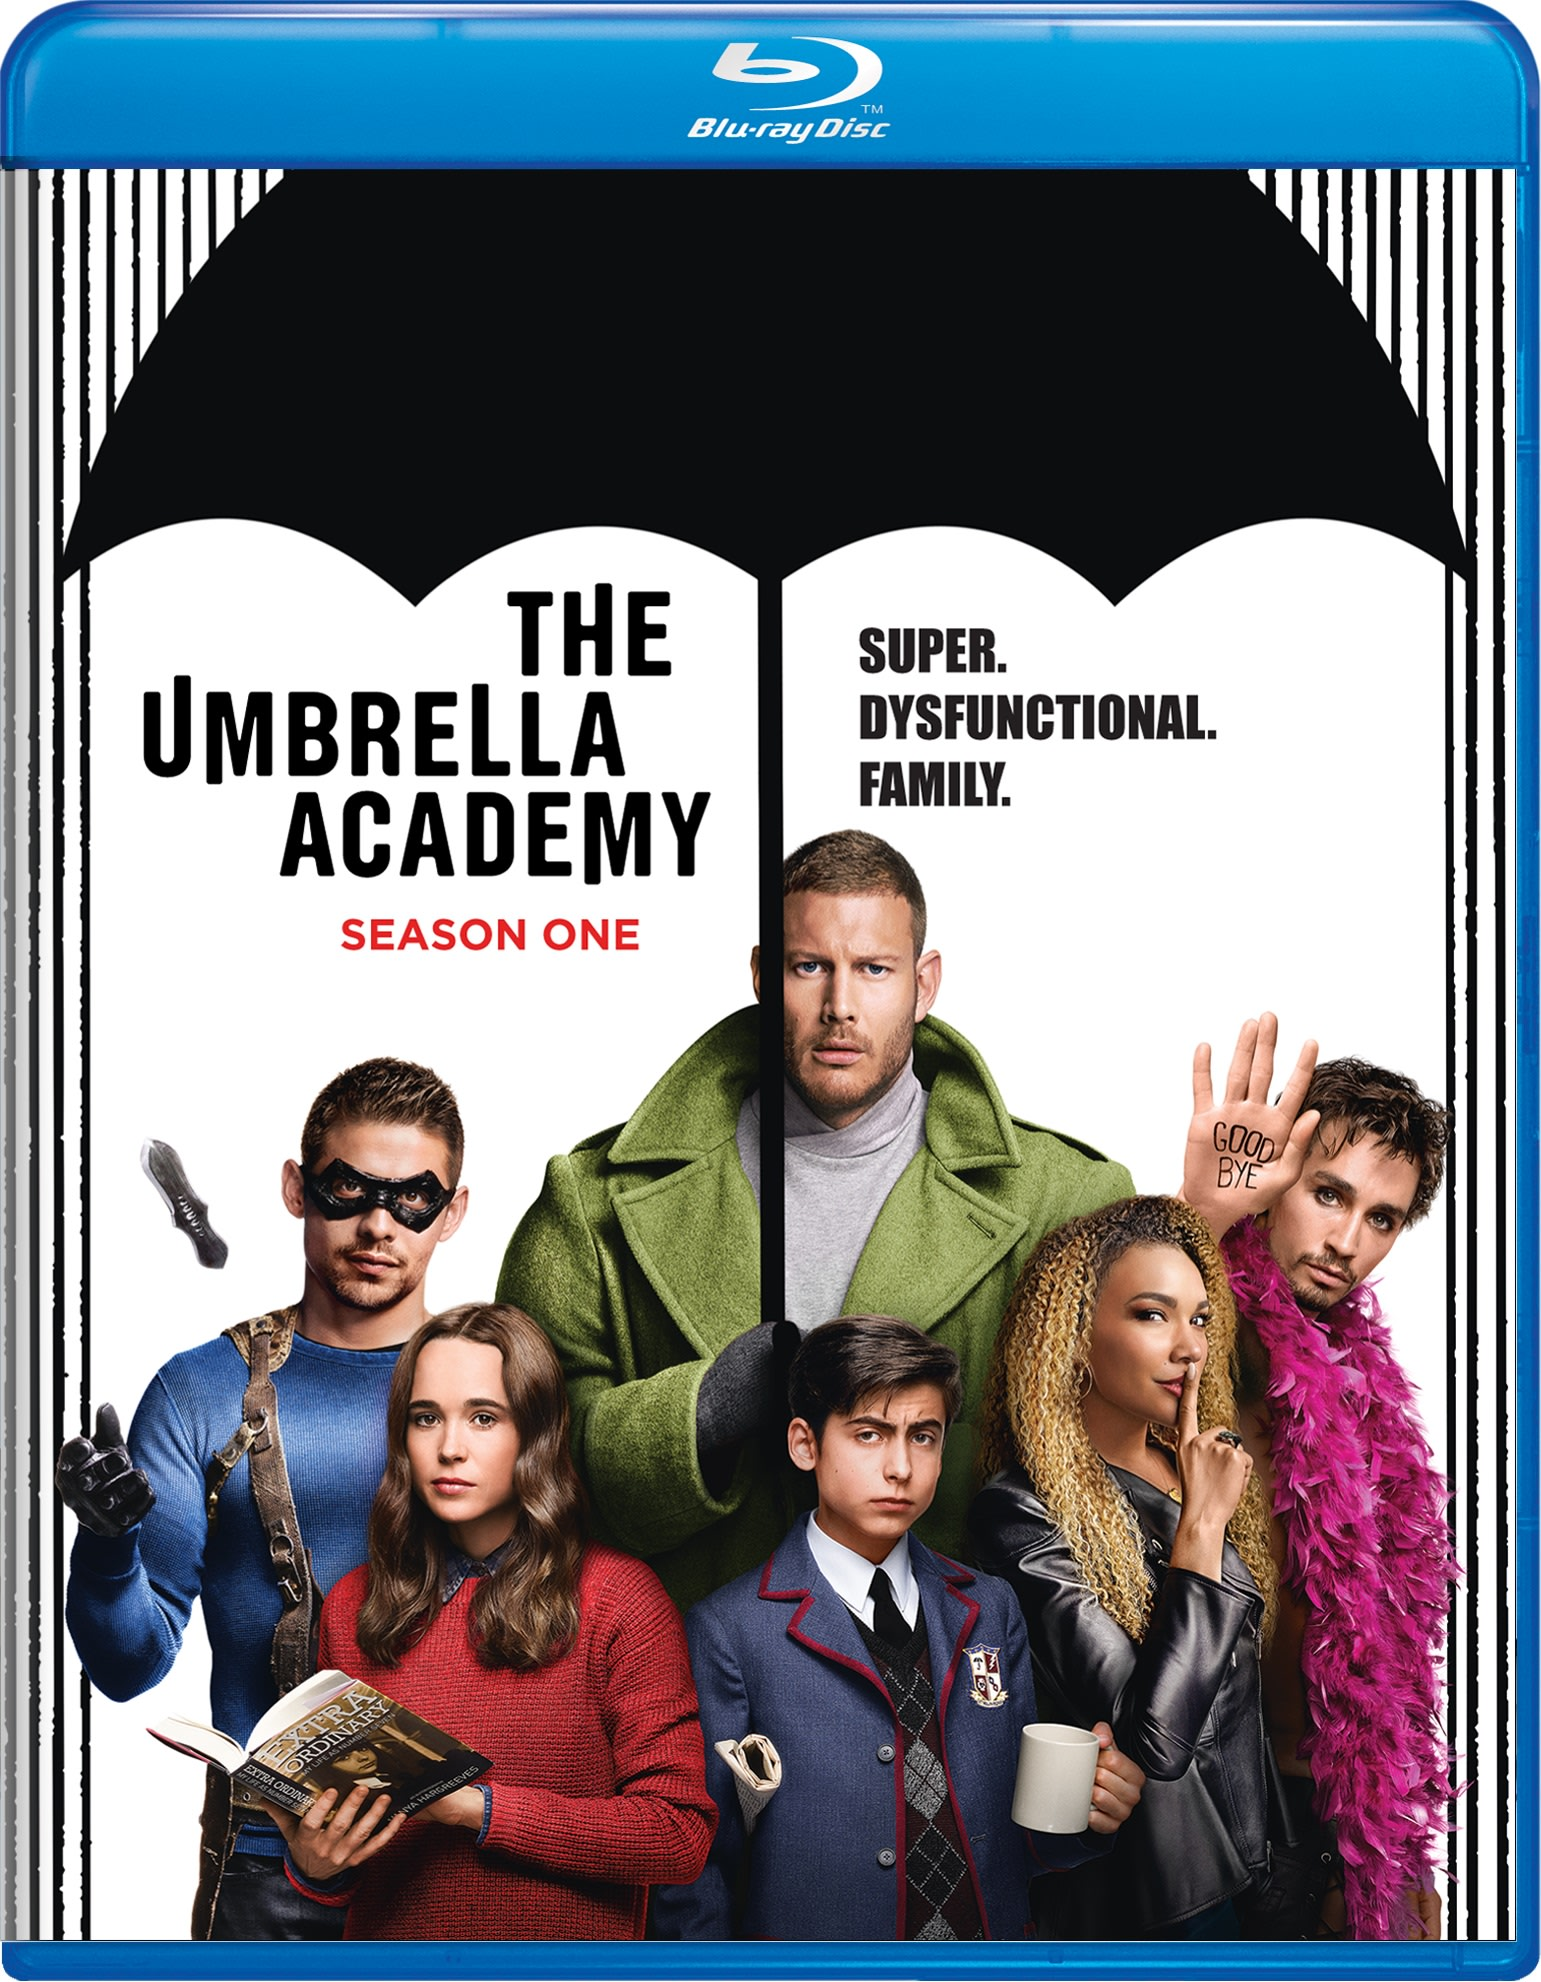 The Umbrella Academy: Season One [Blu-ray]